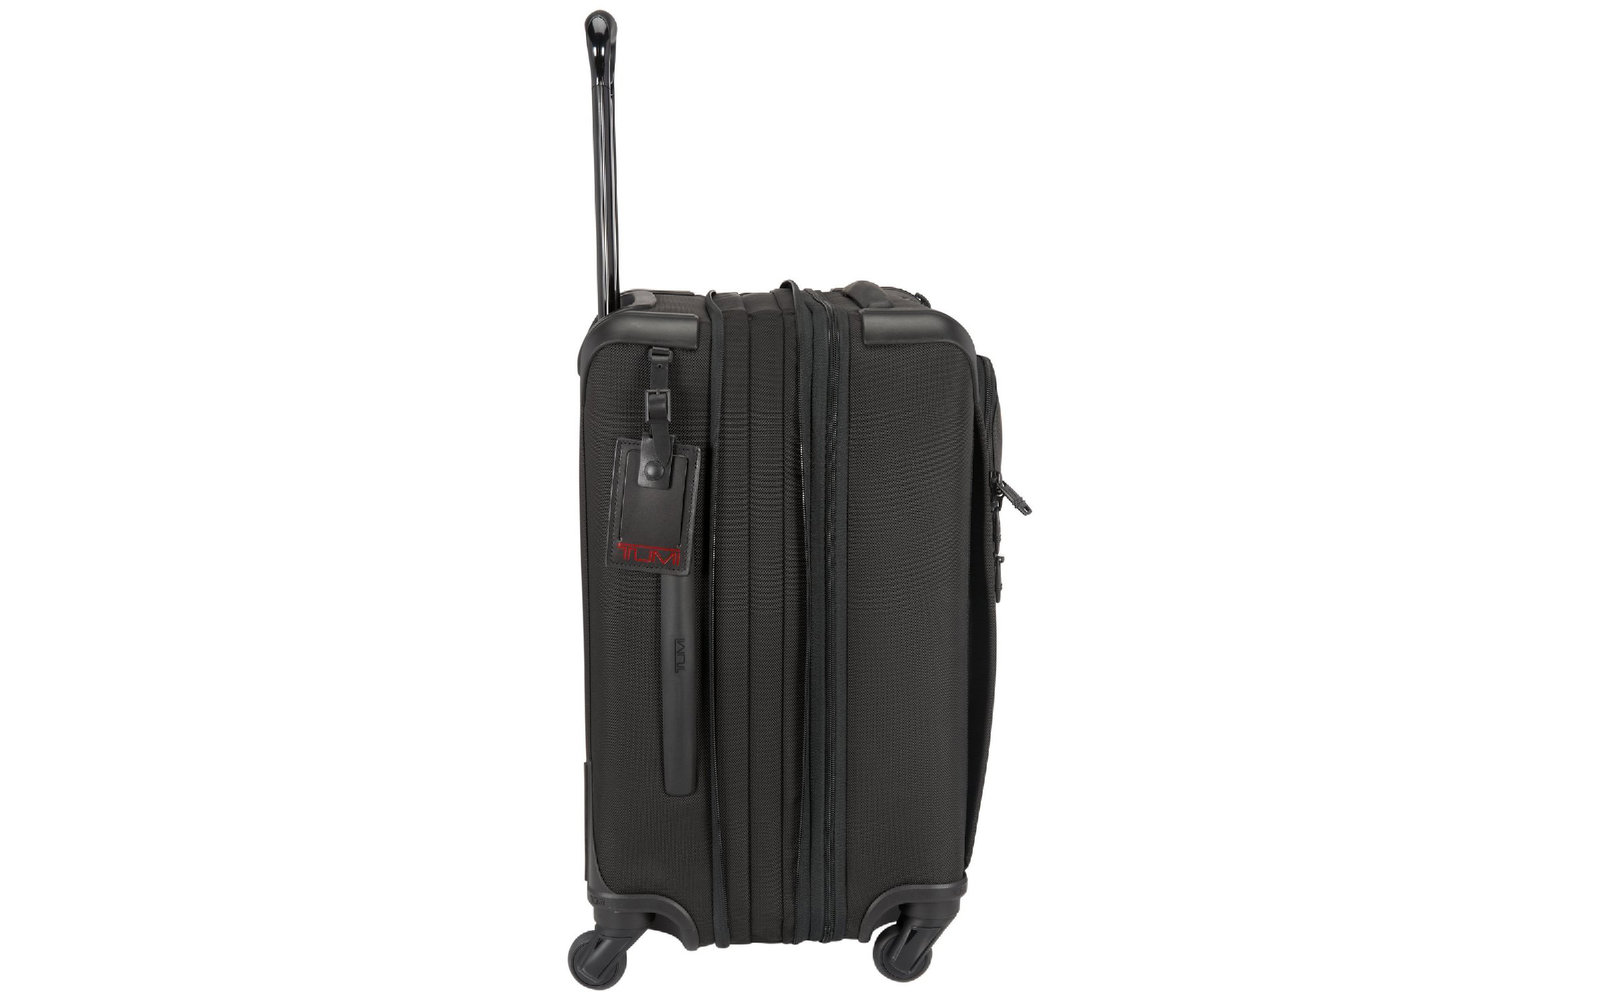 Tumi expandable wheeled carry on